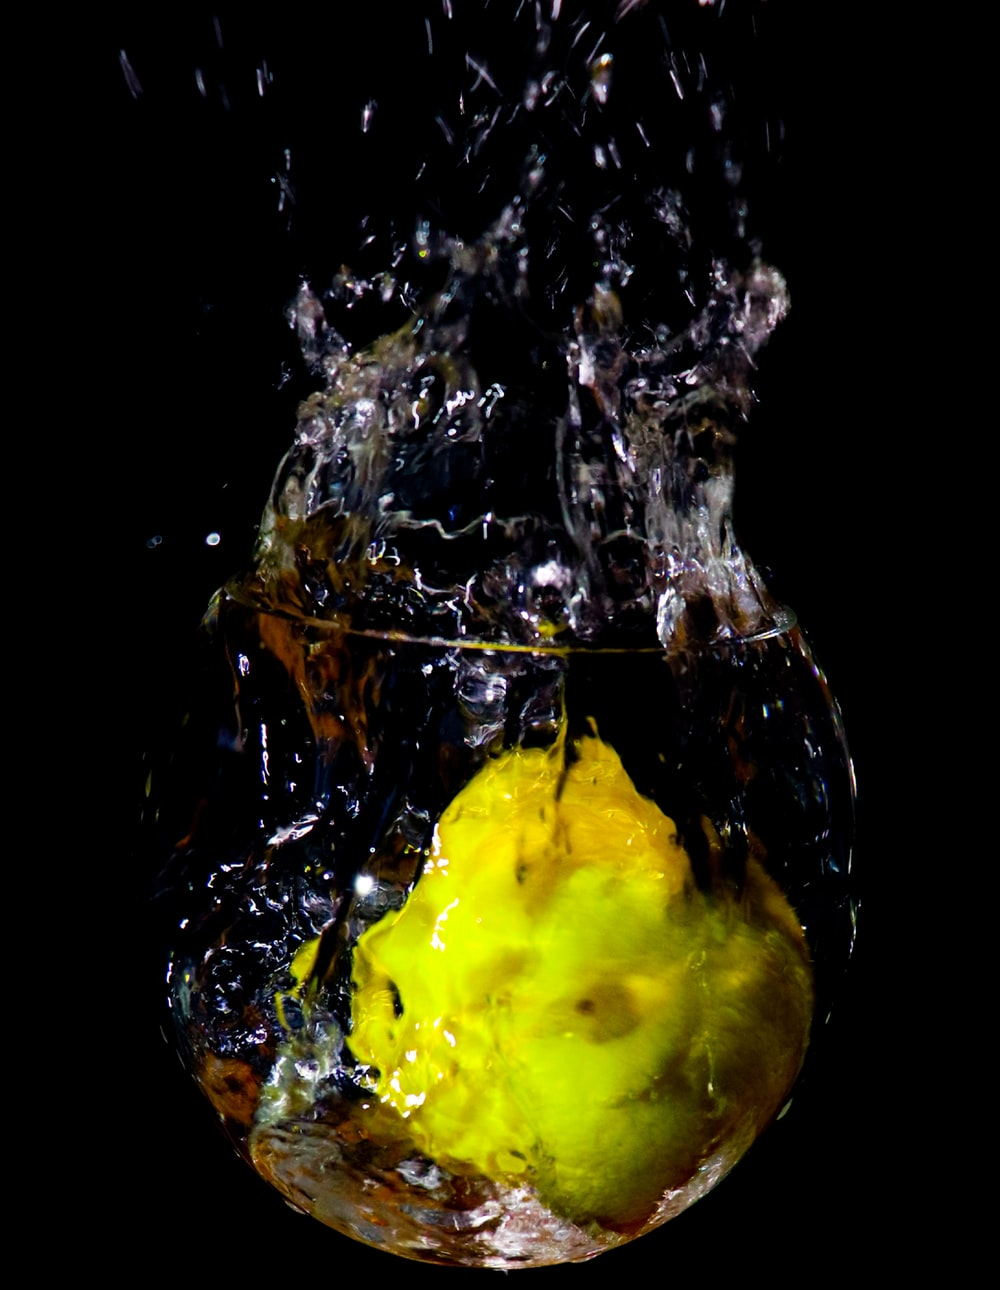 yellow fruit in water with water droplets